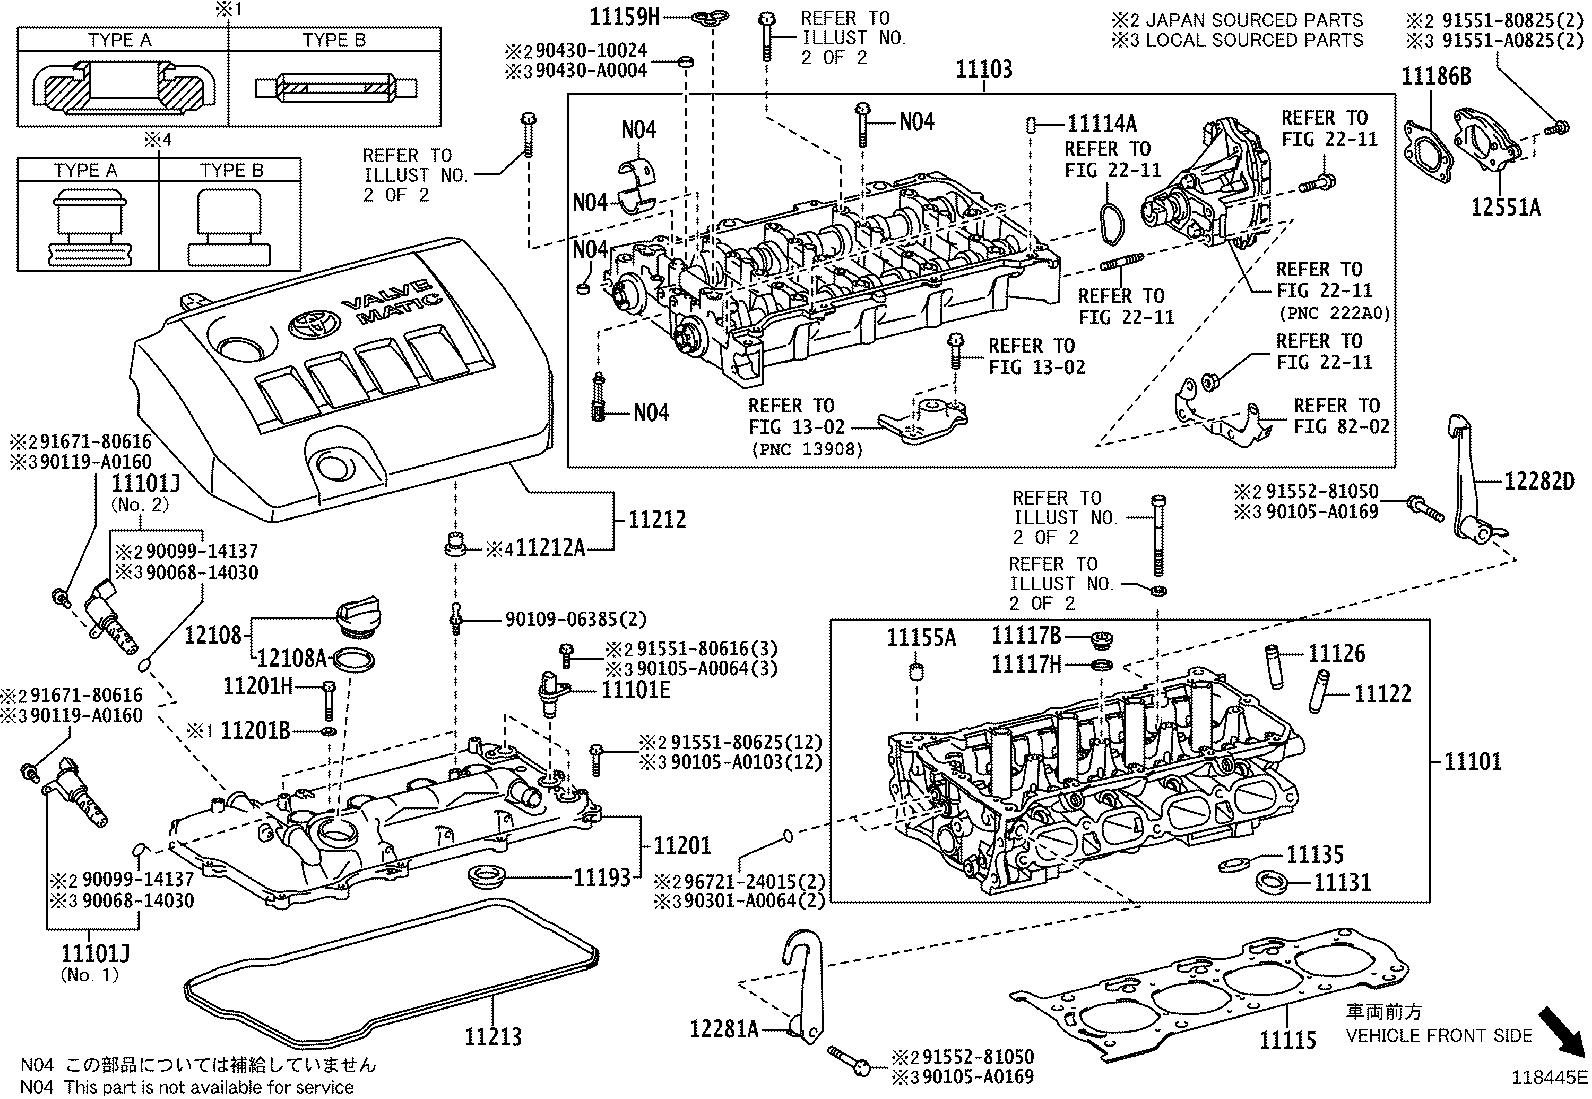 [TVPR_3874]  2007 Toyota Corolla Engine Diagram. toyota corolla engine cover cover  cylinder head no 2. toyota corolla relay integration no 1 relay  integration. toyota corolla wire instrument panel electrical wiring. 2007  toyota corolla | 2007 Toyota Corolla Engine Diagram |  | A.2002-acura-tl-radio.info. All Rights Reserved.